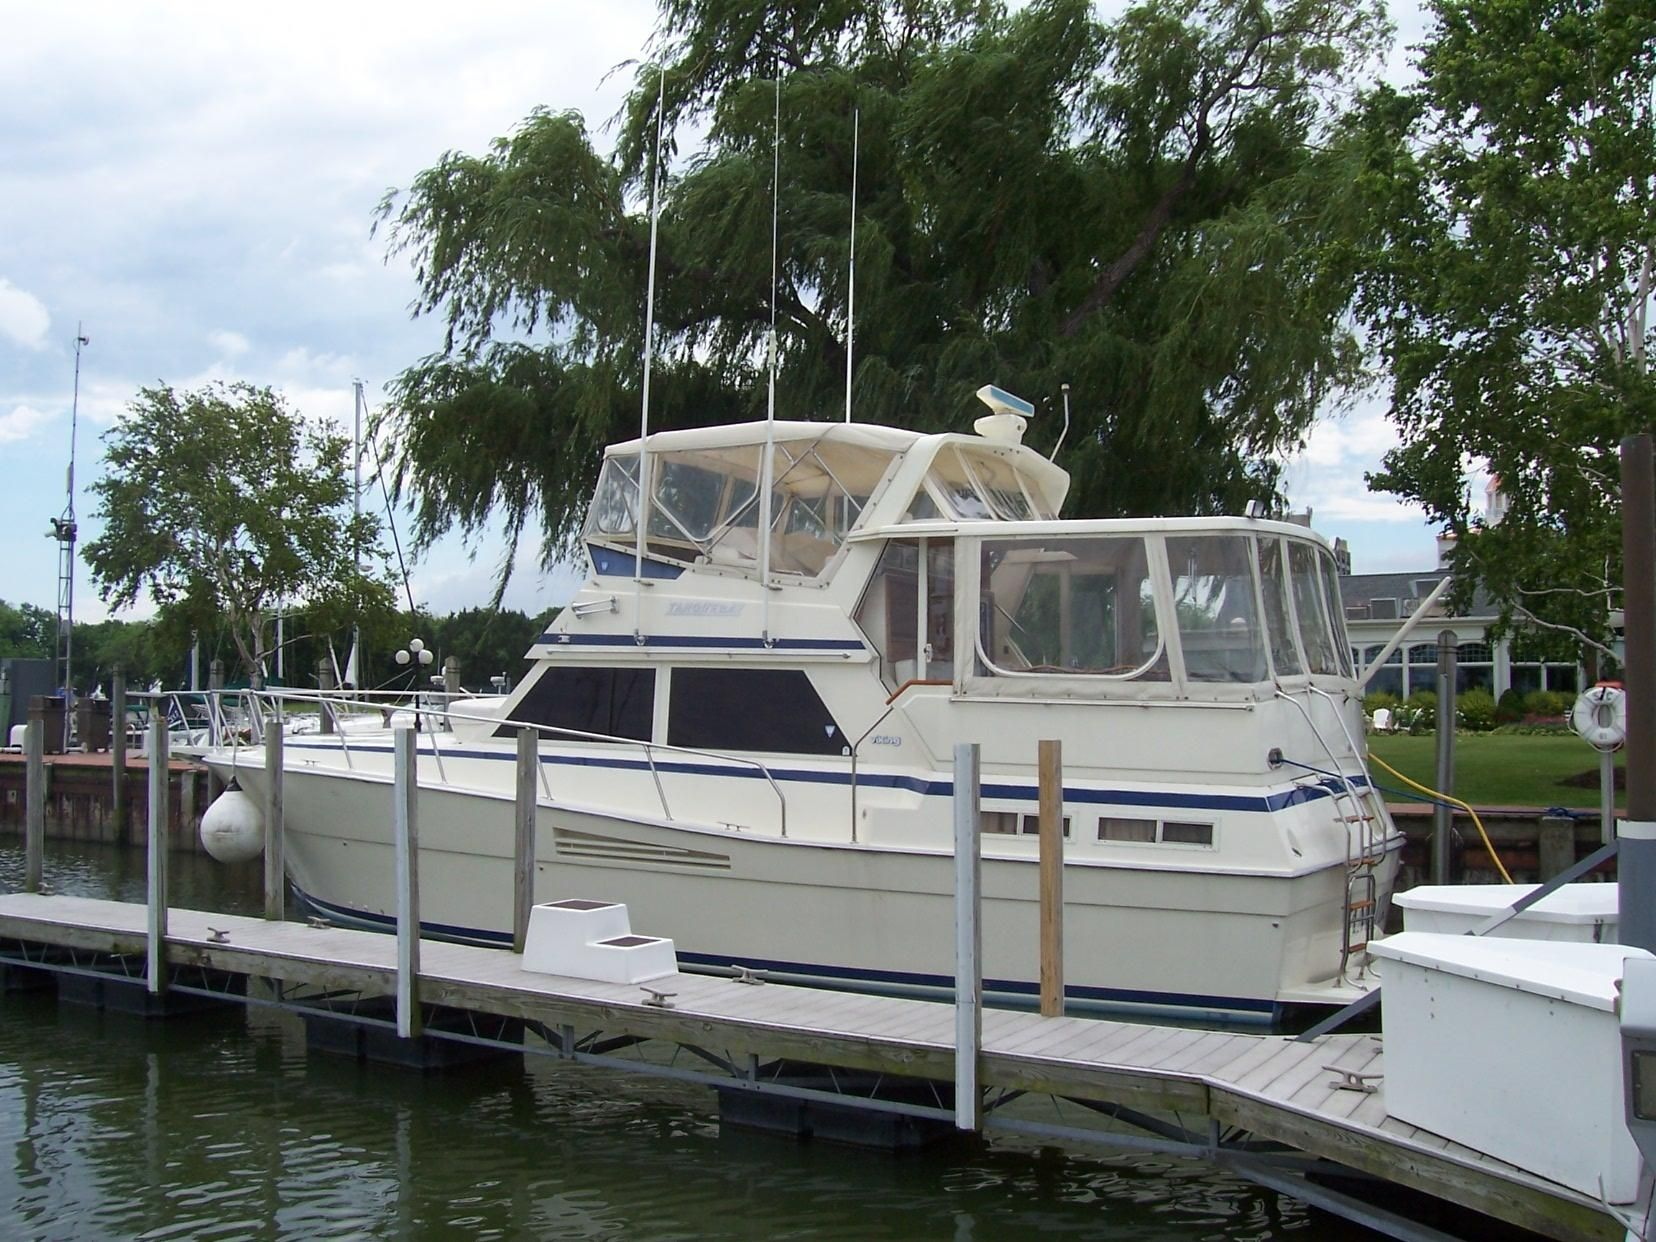 1988 Viking Motor Yacht Power Boat For Sale Www